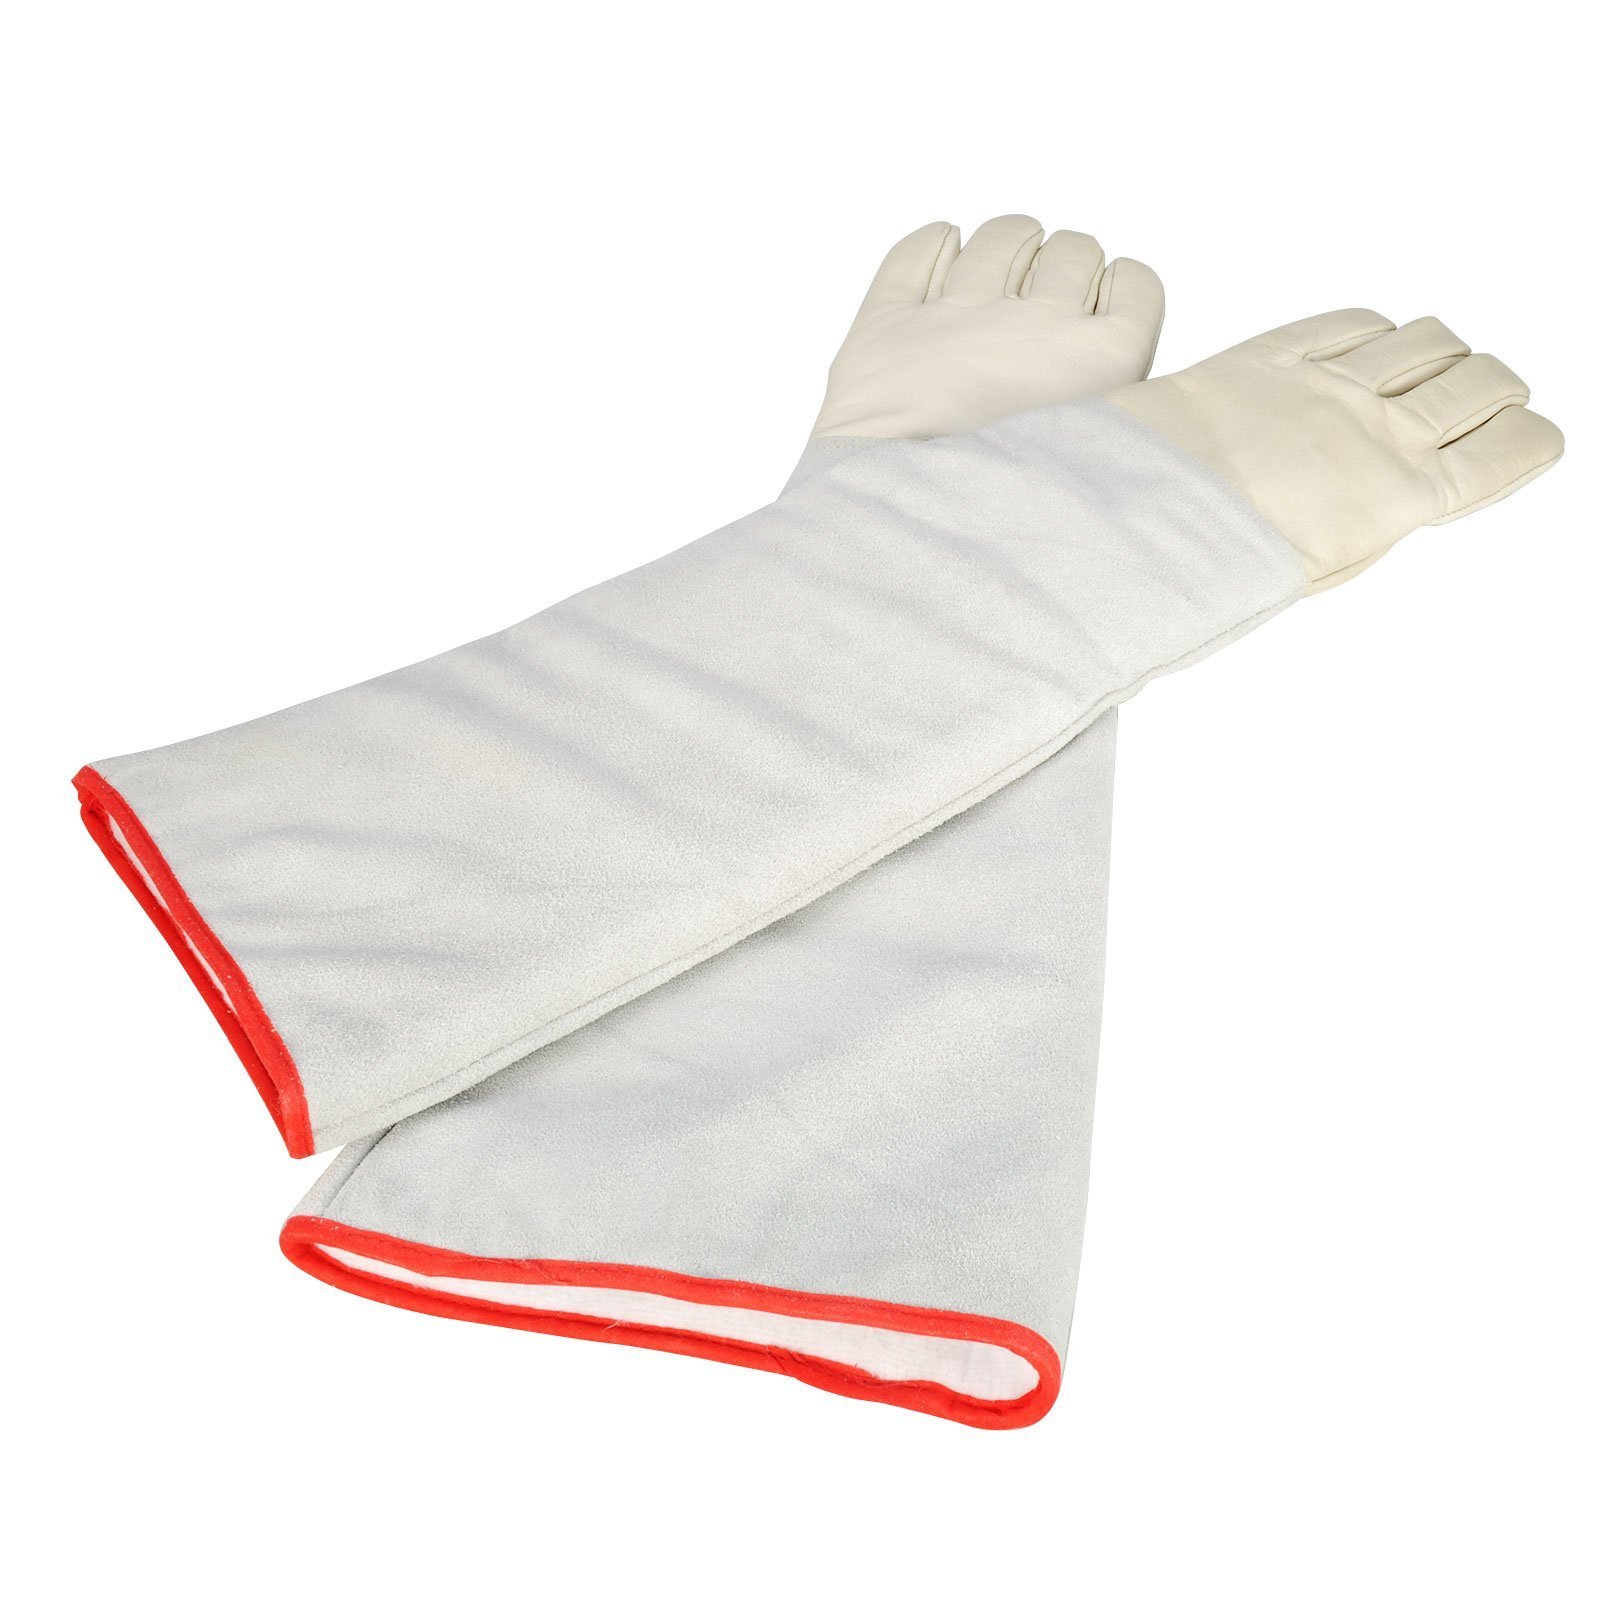 OFTEN Ultra Long Cryogenic Gloves Waterproof Protective Gloves Liquid Nitrogen Frozen Gloves Cold Storage,White,24.41'' by OFTEN (Image #2)